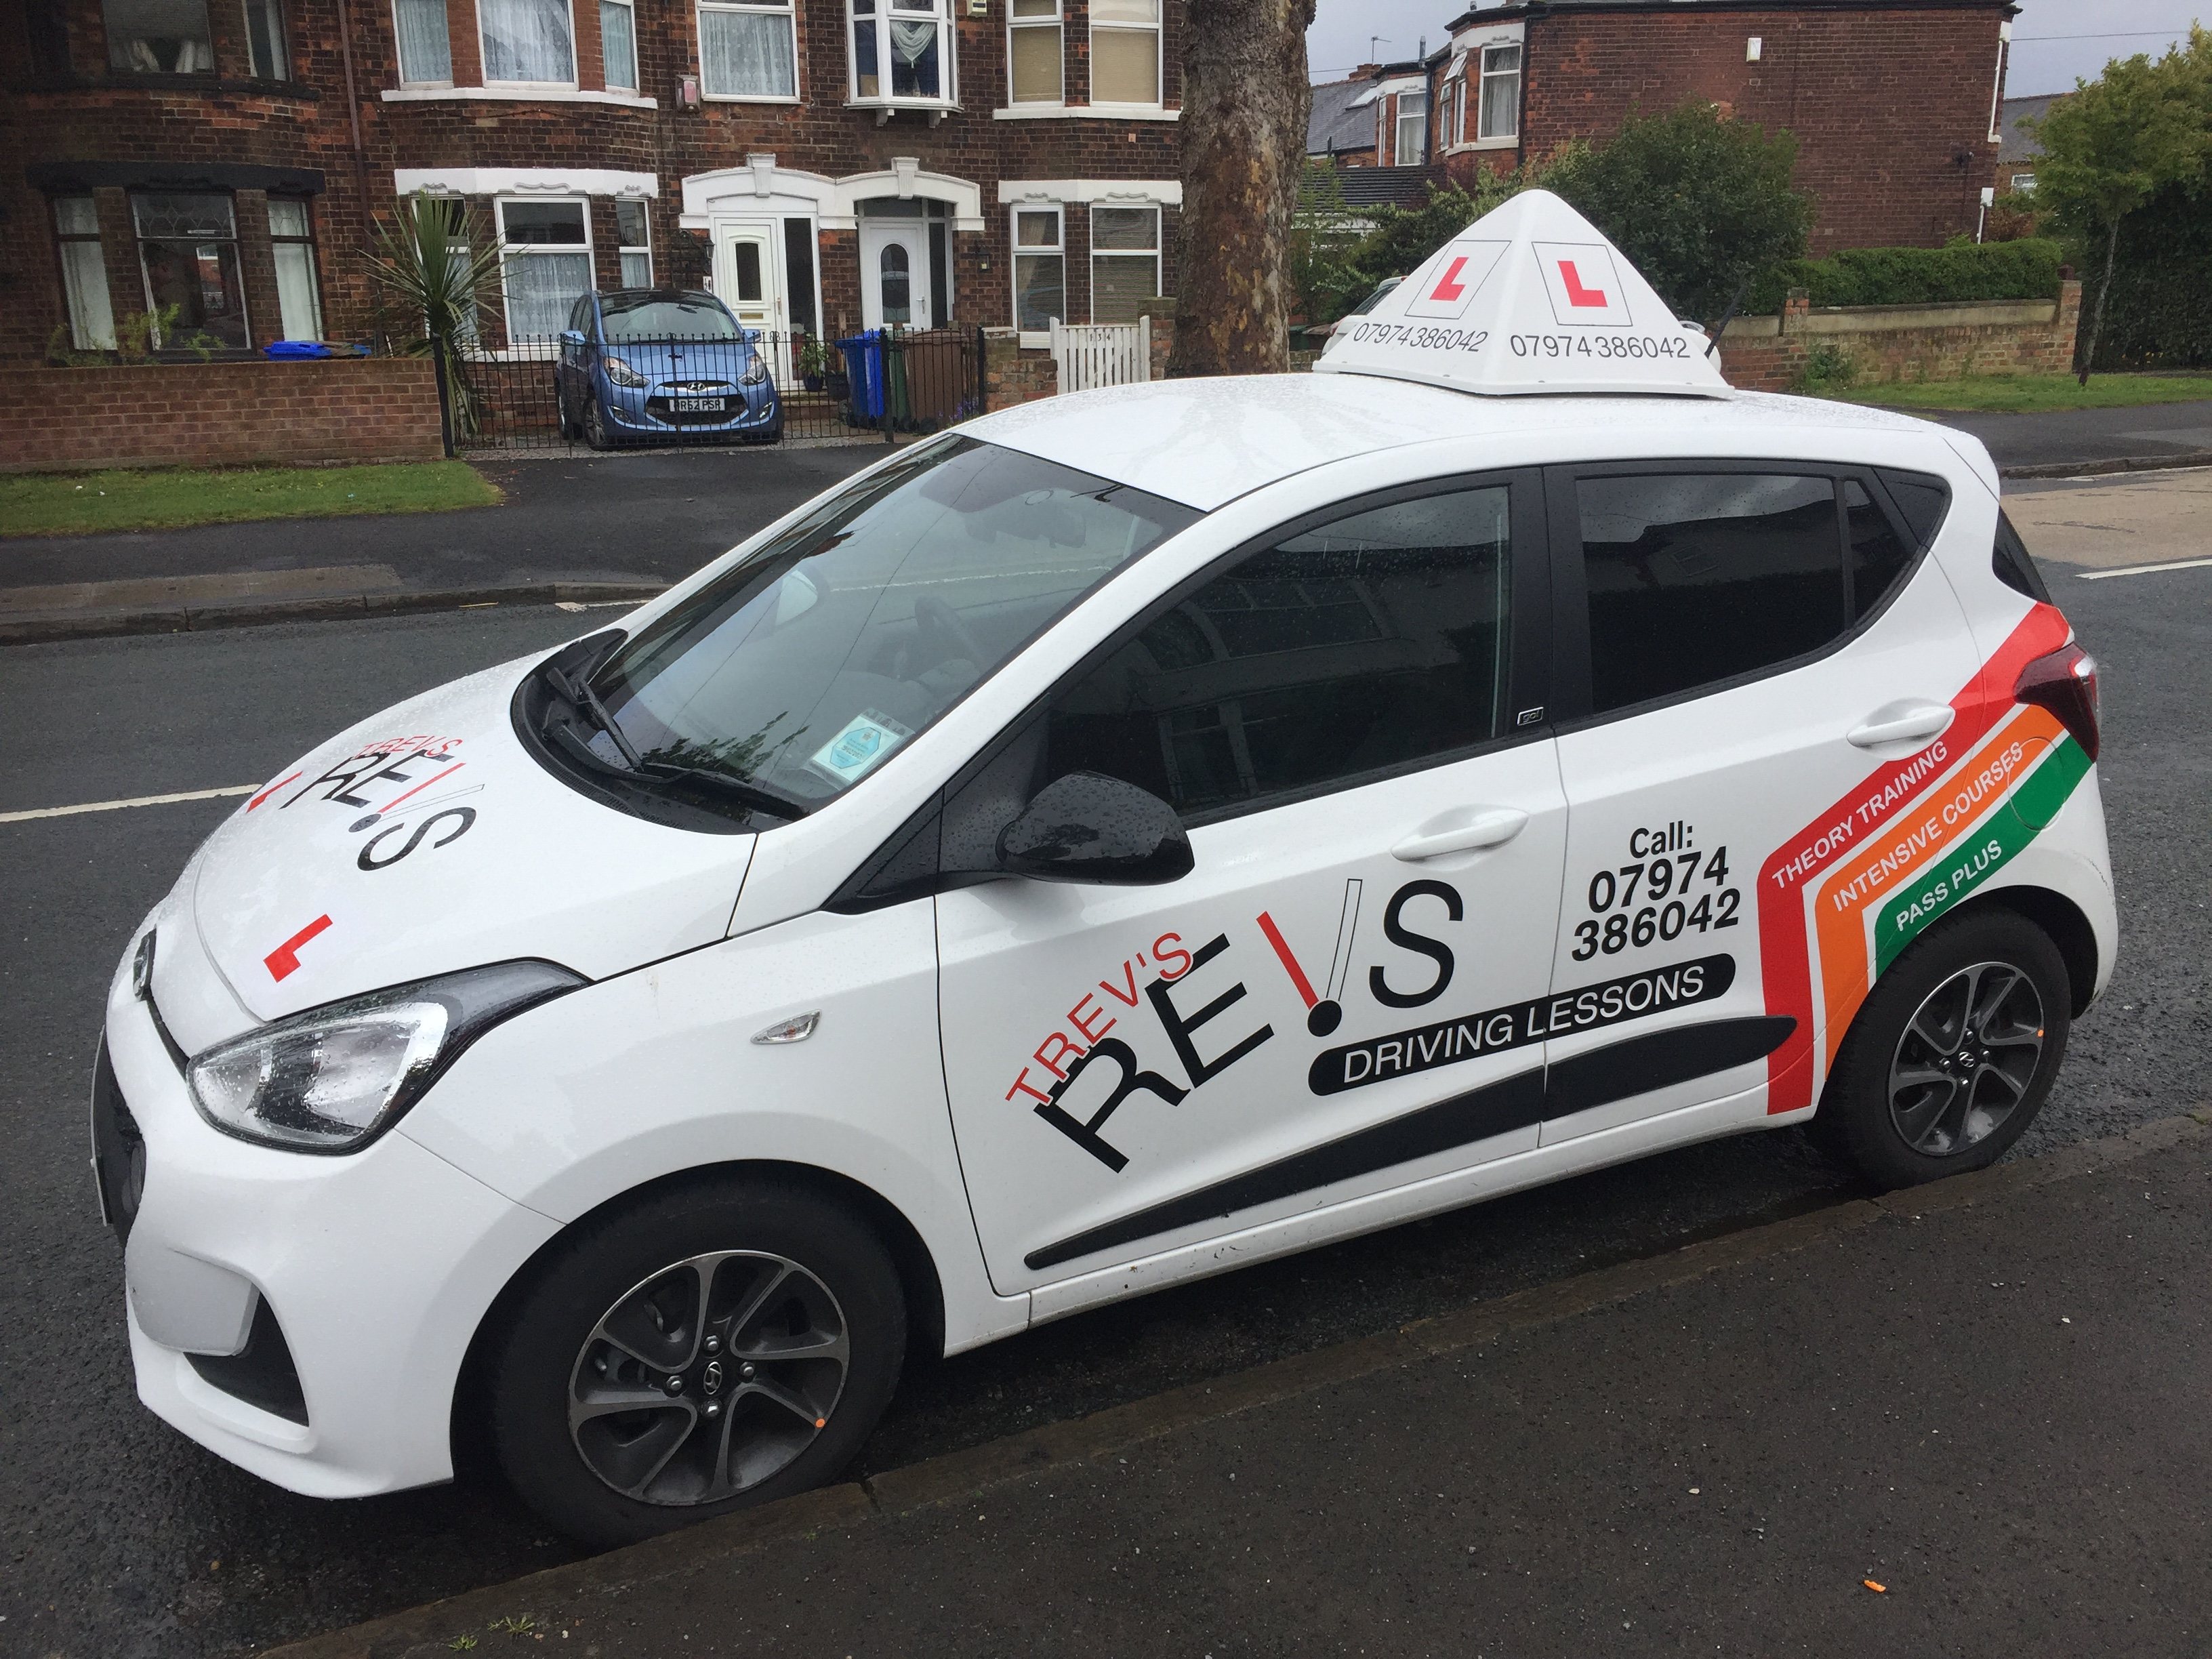 Driving lessons in Scarborough, Malton, Filey and Pickering